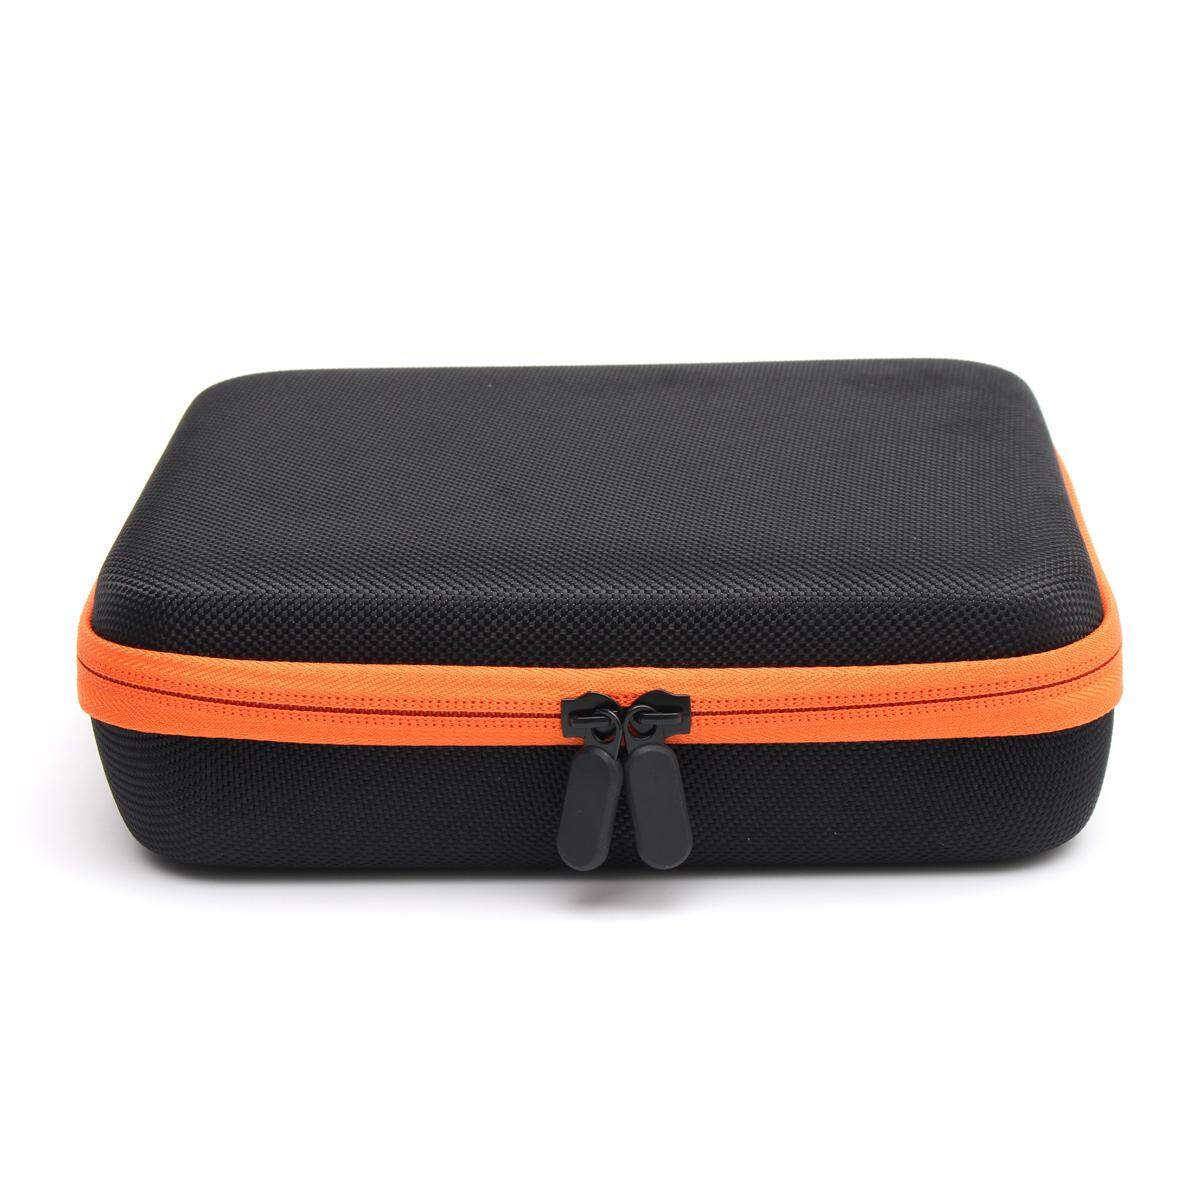 30 Bottle Essential Oil Carry Case 10ML Holder Storage Aromatherapy Hand Bag NEW # Orange